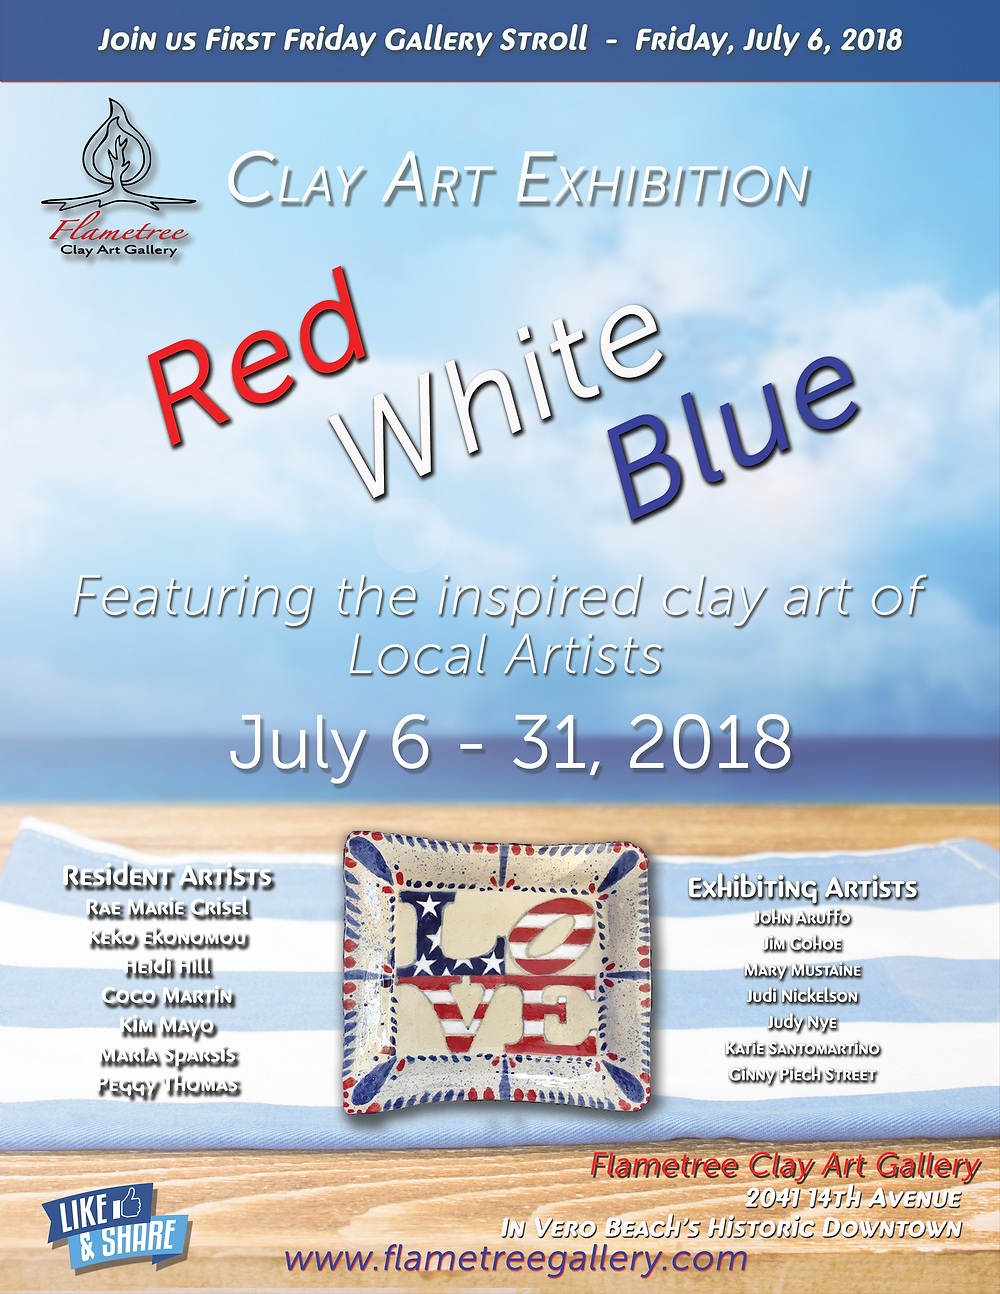 July 2018 - Clay Art Exhibition - Red White Blue